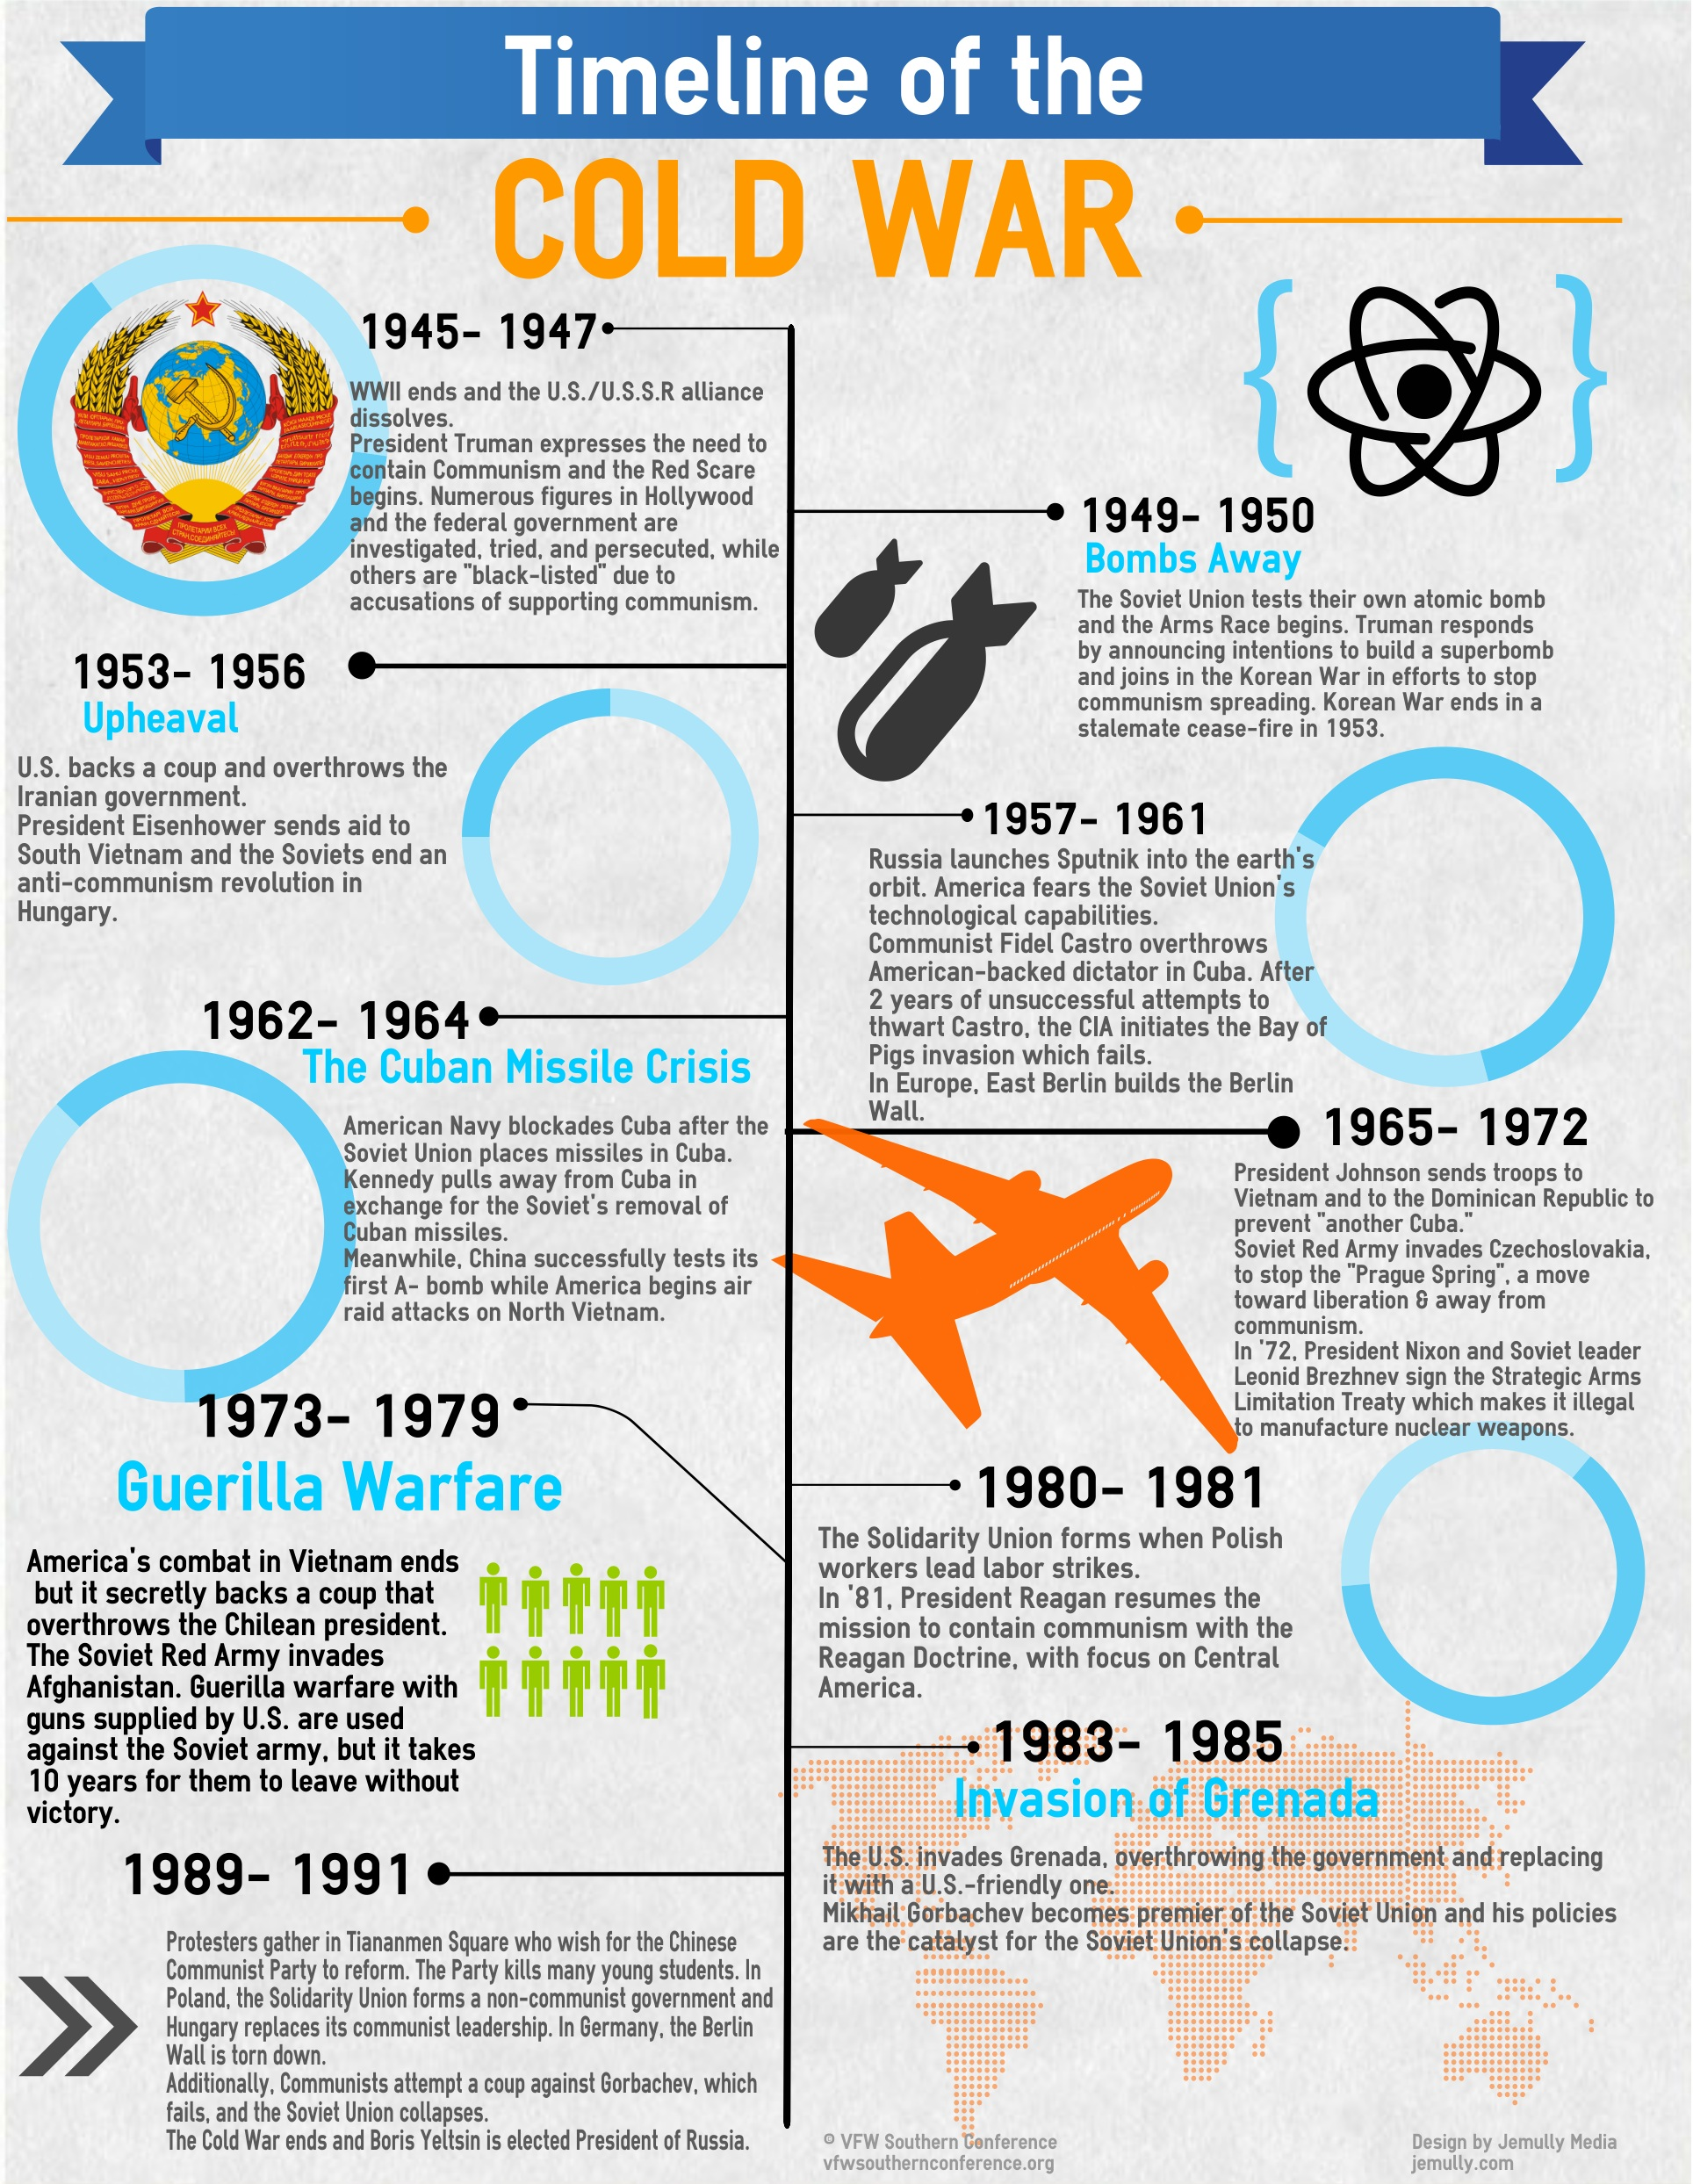 Cold War Timeline Infographic